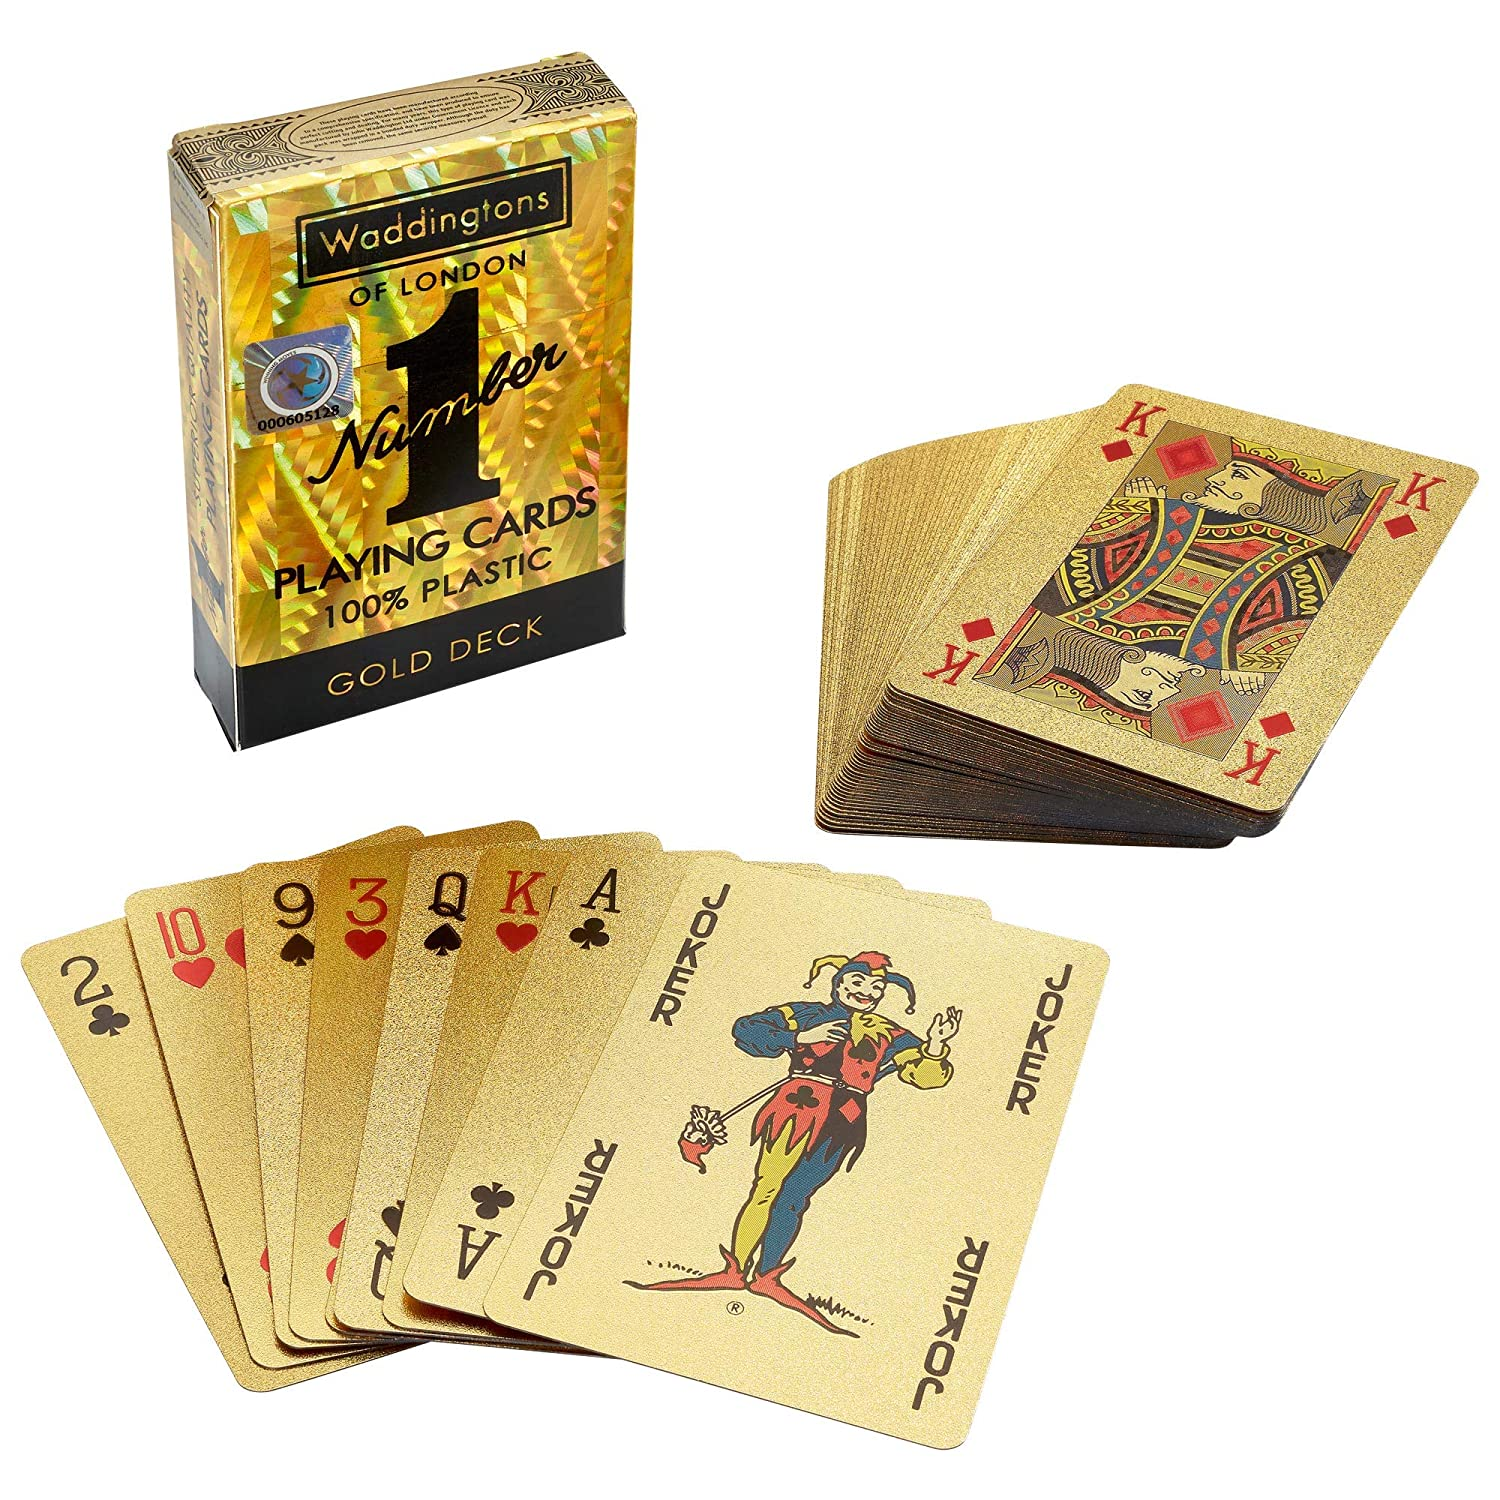 Waddington's Number 1 Special Editions Playing Cards Shop The 2018 Range!